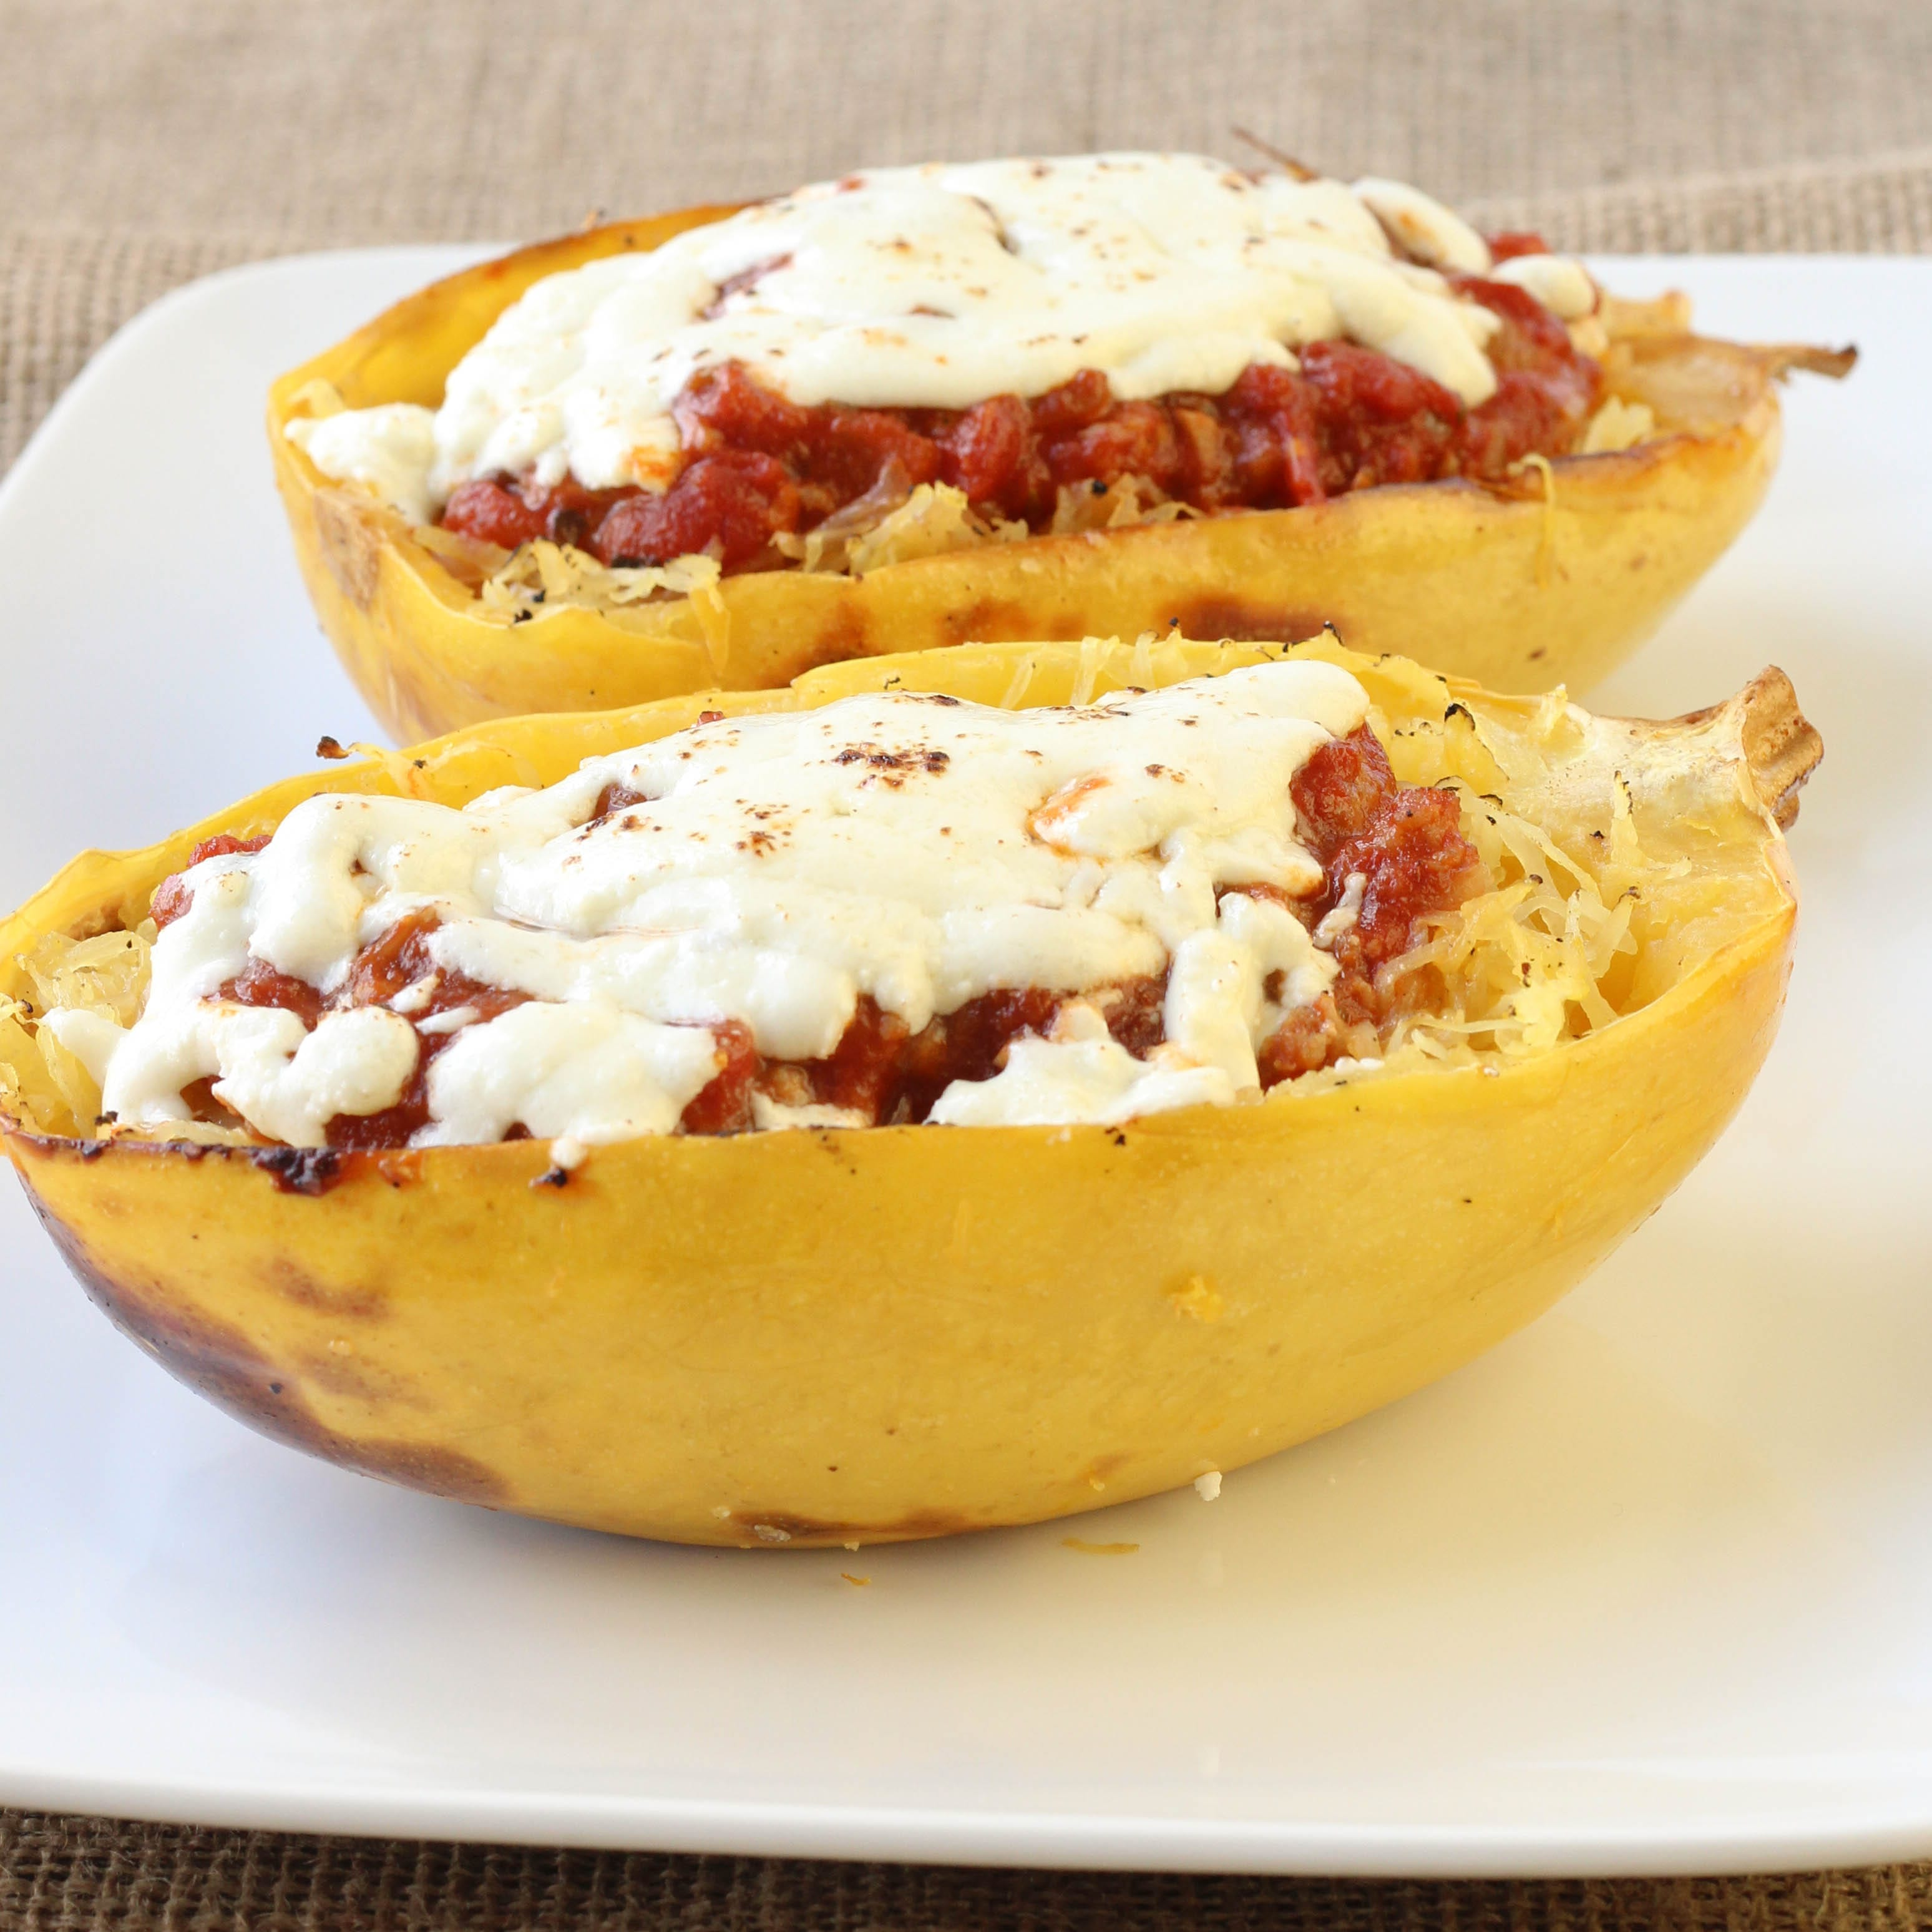 [baked spaghetti squash] - 28 images - how to cook ...